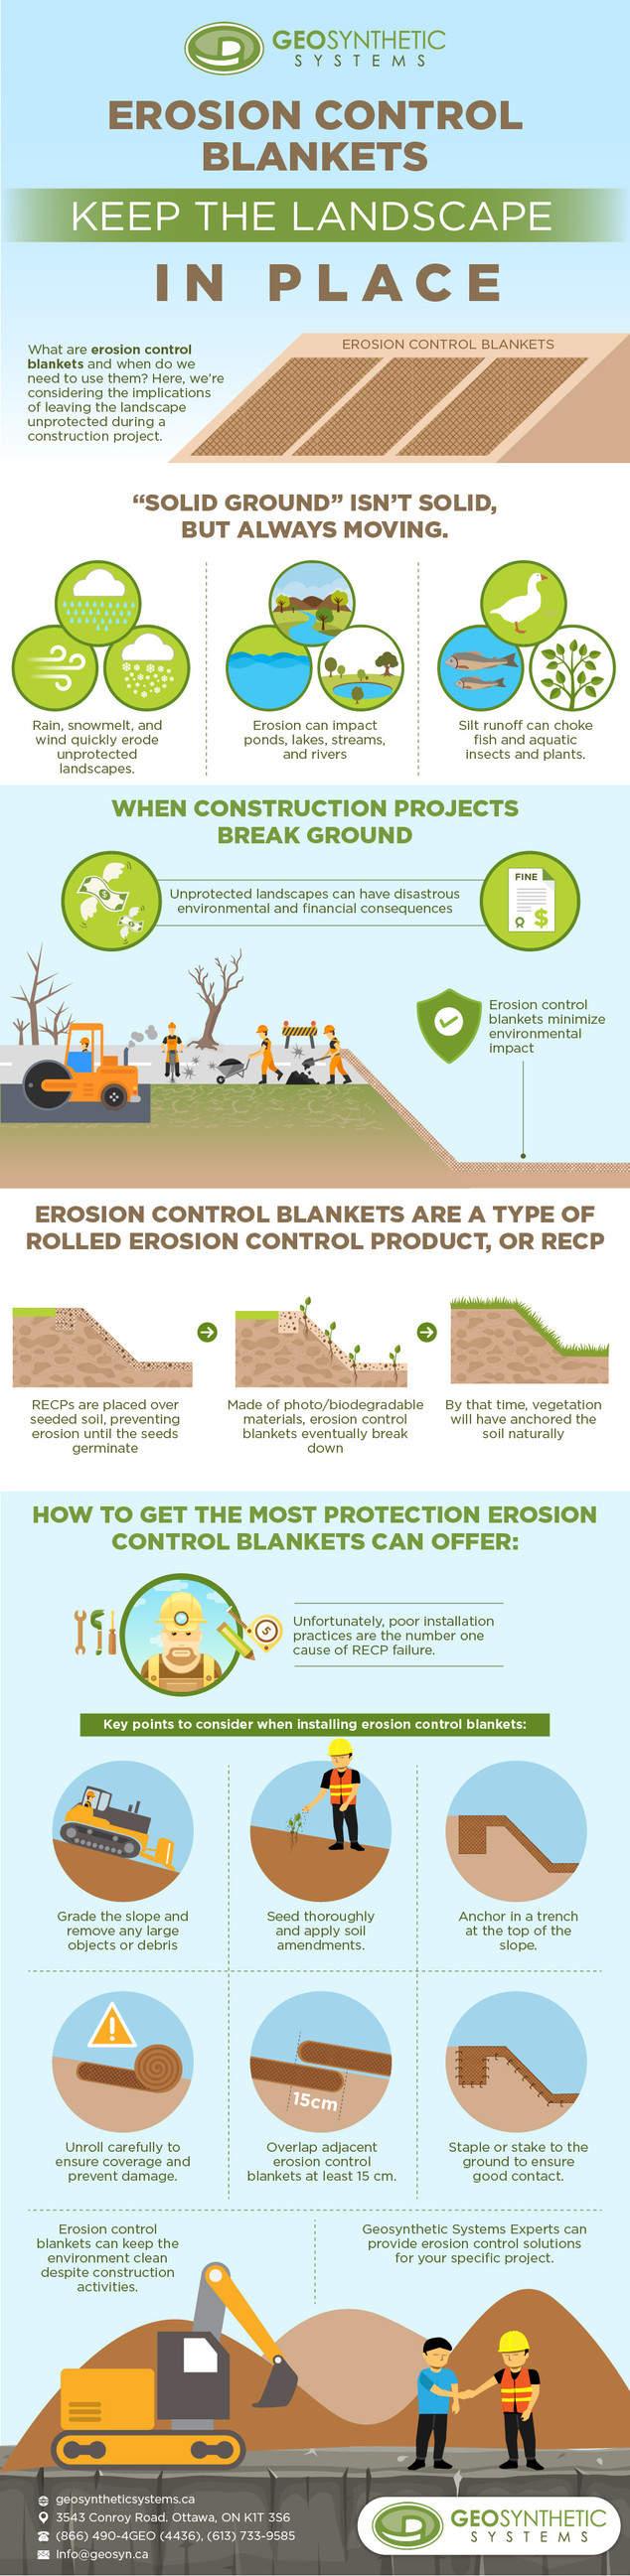 GSS Erosion Control Blankets Keep the Landscape